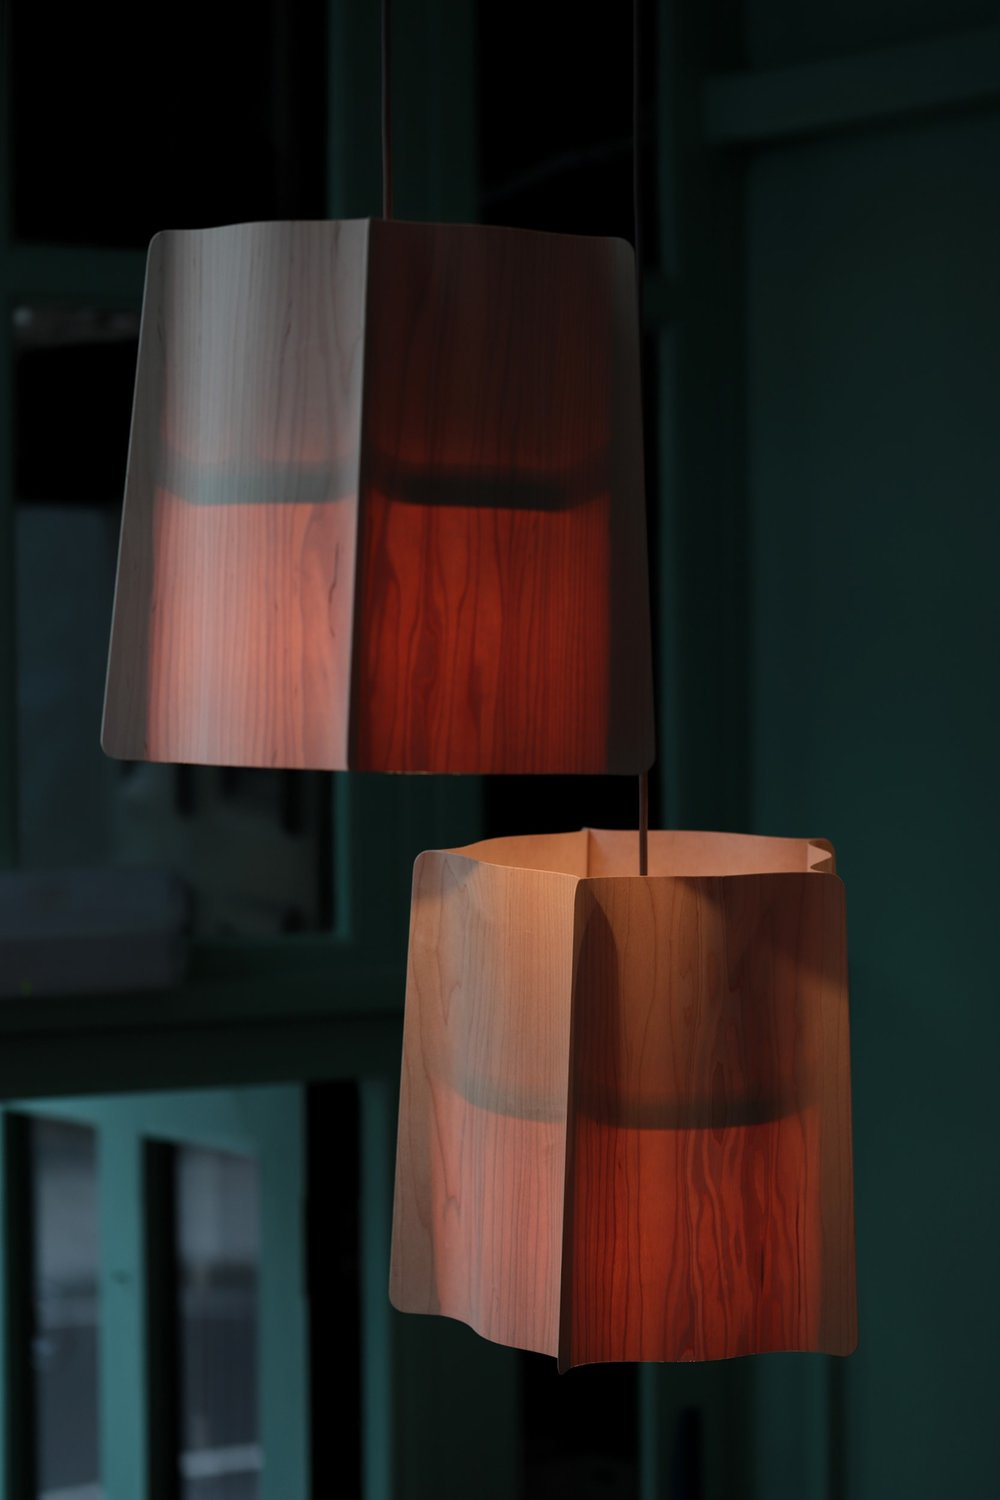 Unique lamps designed specifically for the salon.